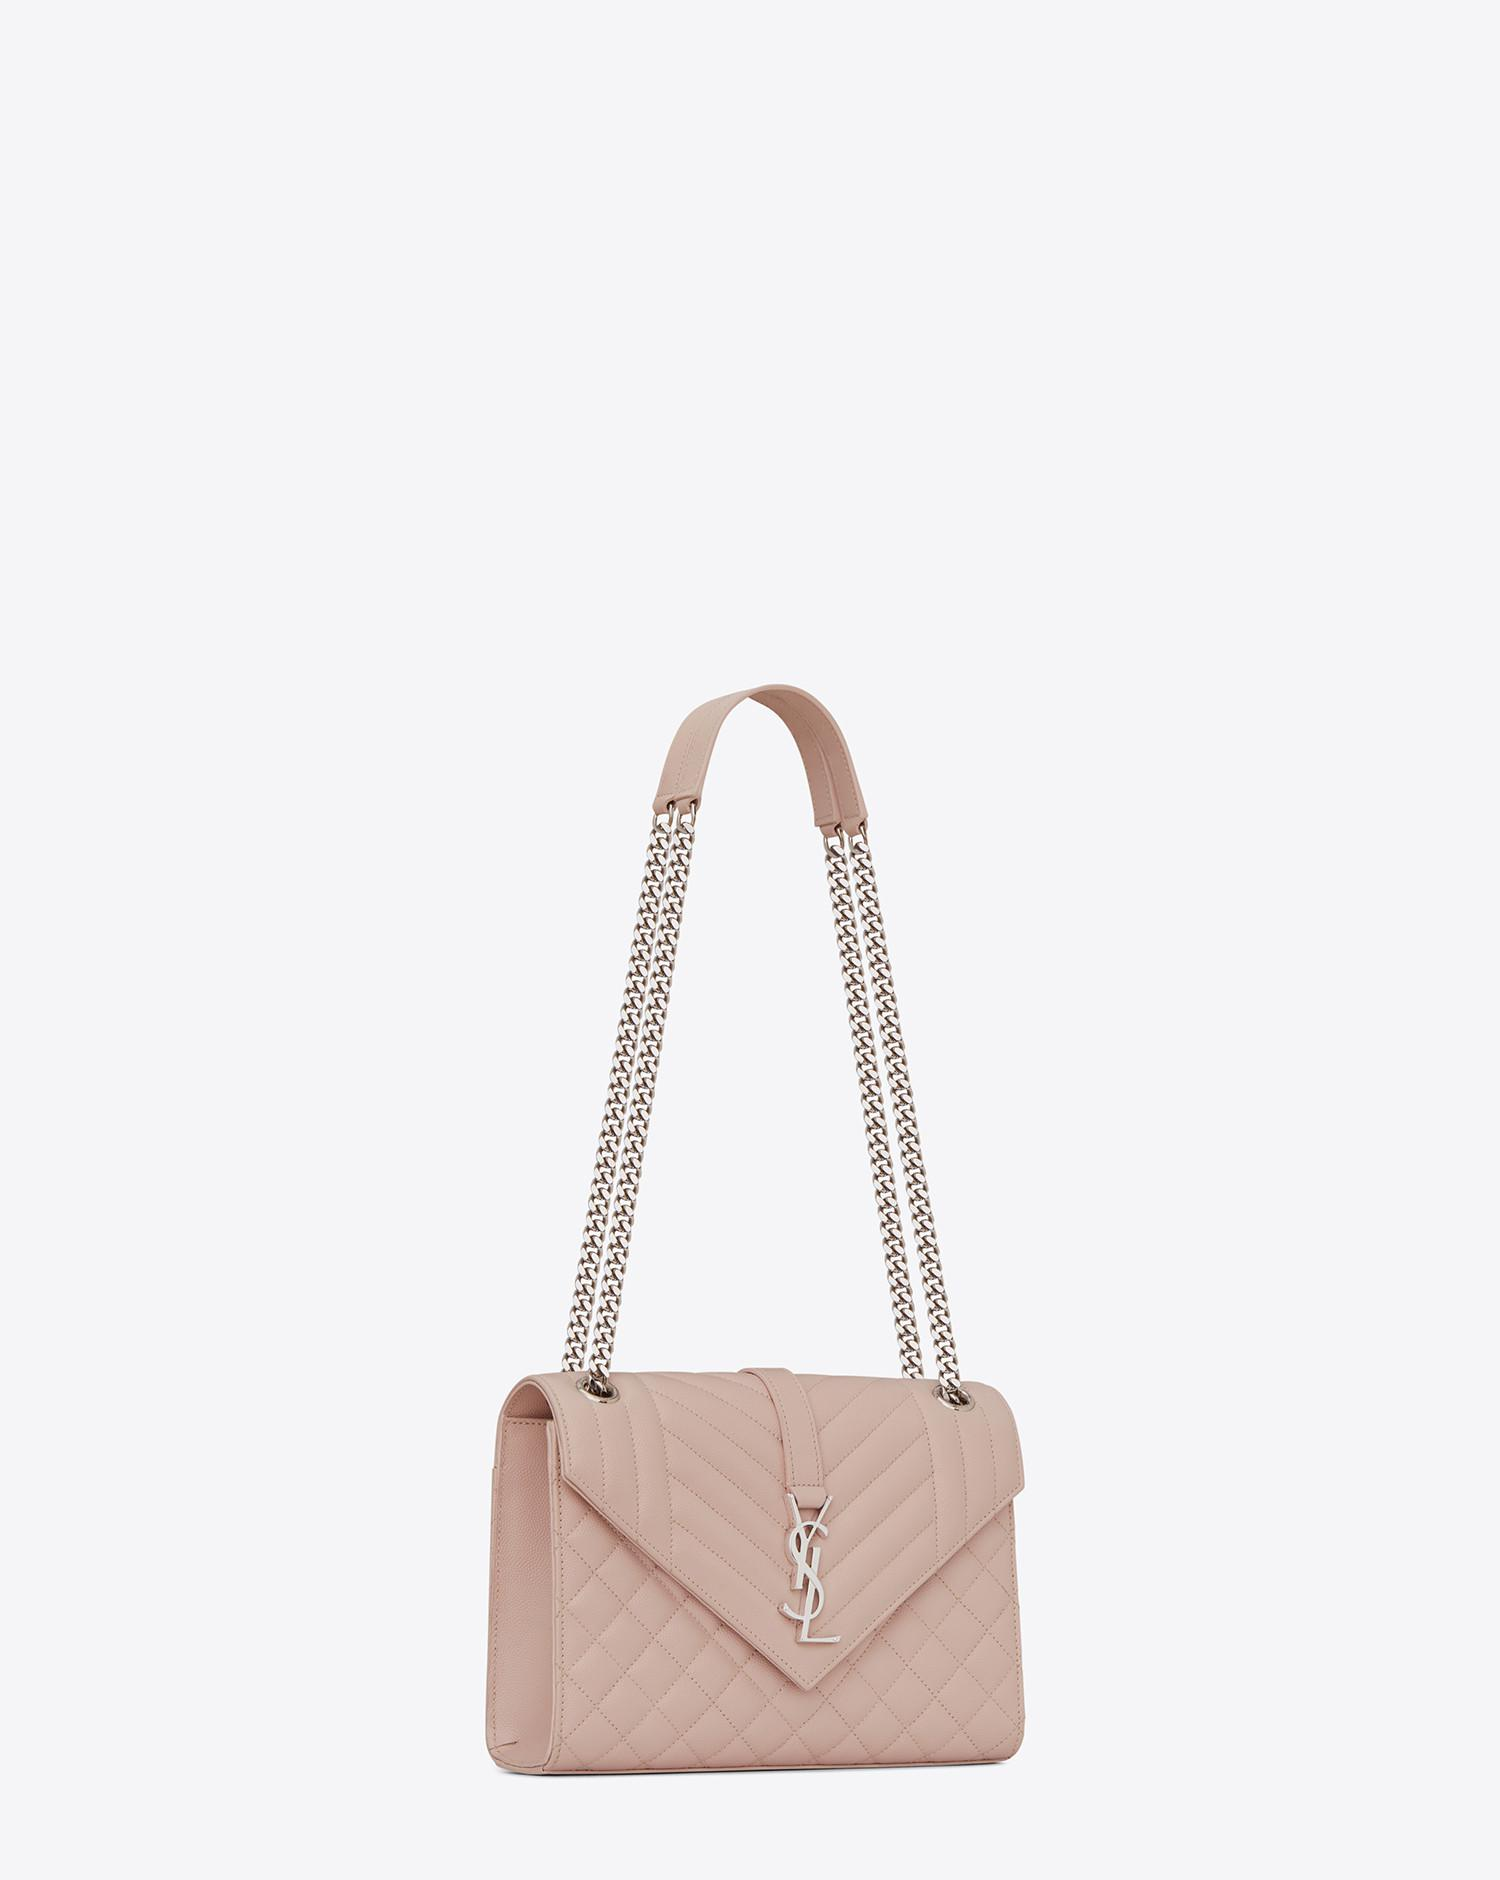 184dfb3bb9cff Saint Laurent. Women s Pink Envelope Medium Bag In Grain De Poudre Embossed  Leather